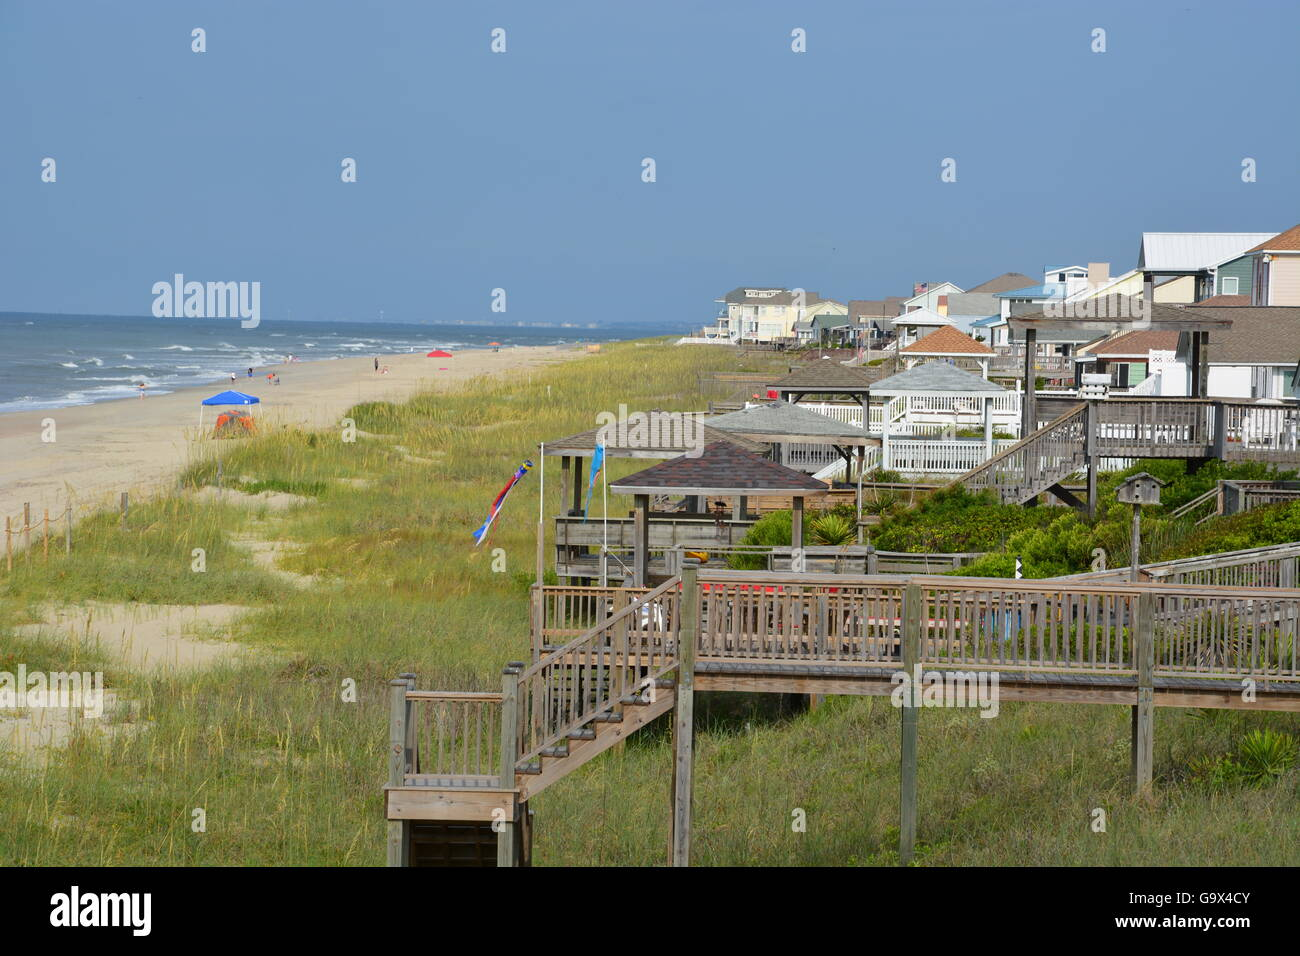 The beach is largely deserted early in the morning at Long Beach, Oak Island in North Carolina - Stock Image